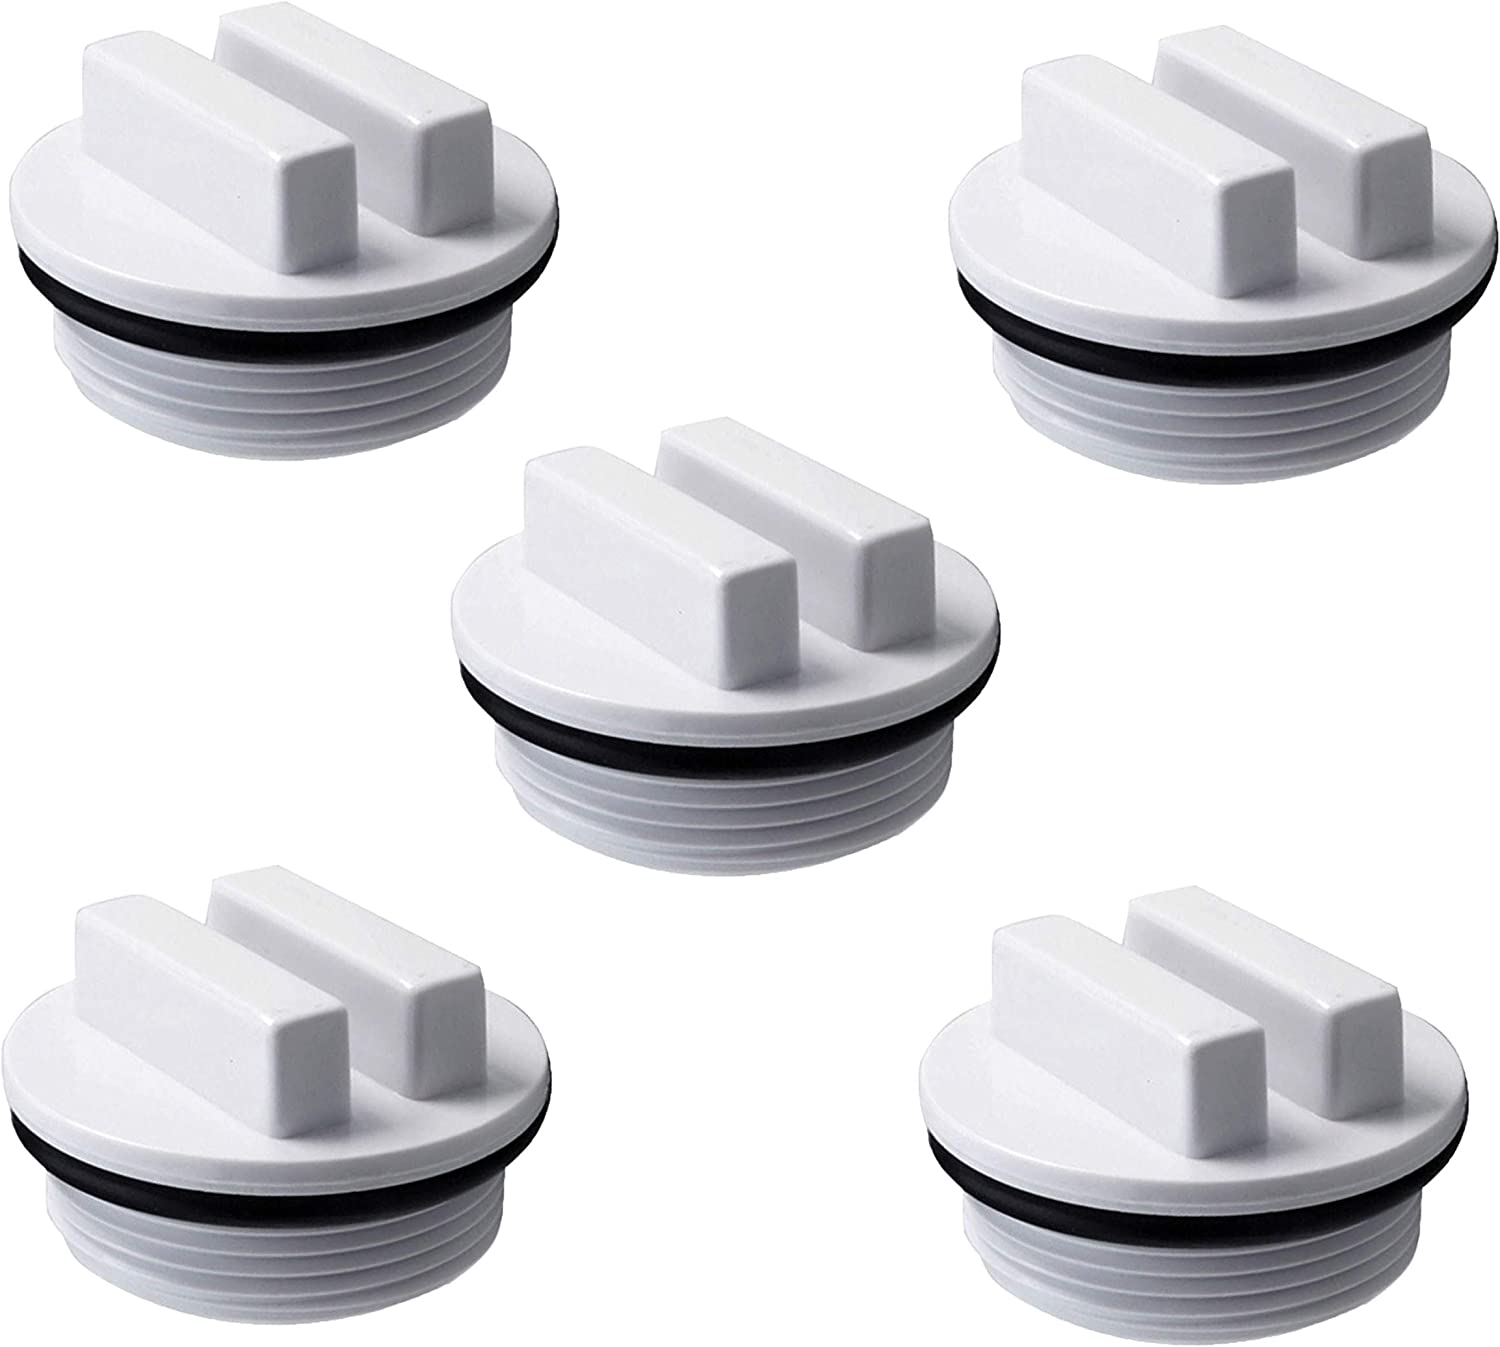 """ATIE PoolSupplyTown 1.5"""" Pool Spa Threaded Filter Drain Winter Plug w/O-Ring Replace for Hayward Filter Drain Winter Plug (5 Pack)"""